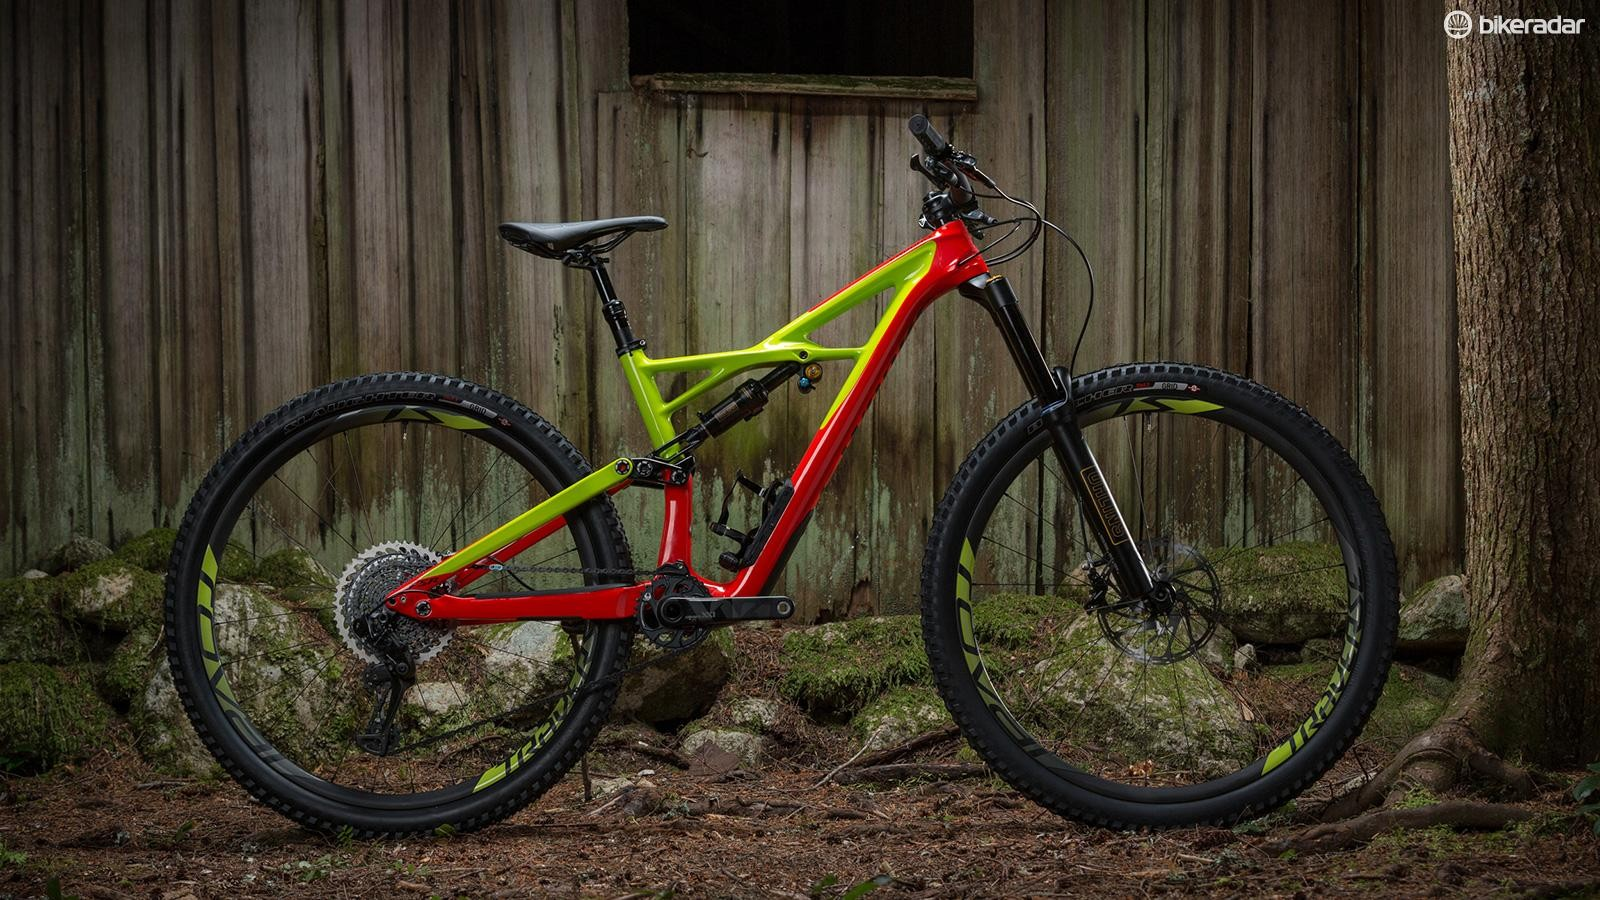 The new Enduro may look similar to its predecessor, but it's had a whole host of tweaks, including new internal cable routing, Boost axle spacing and a bump up in travel to 165mm at the rear